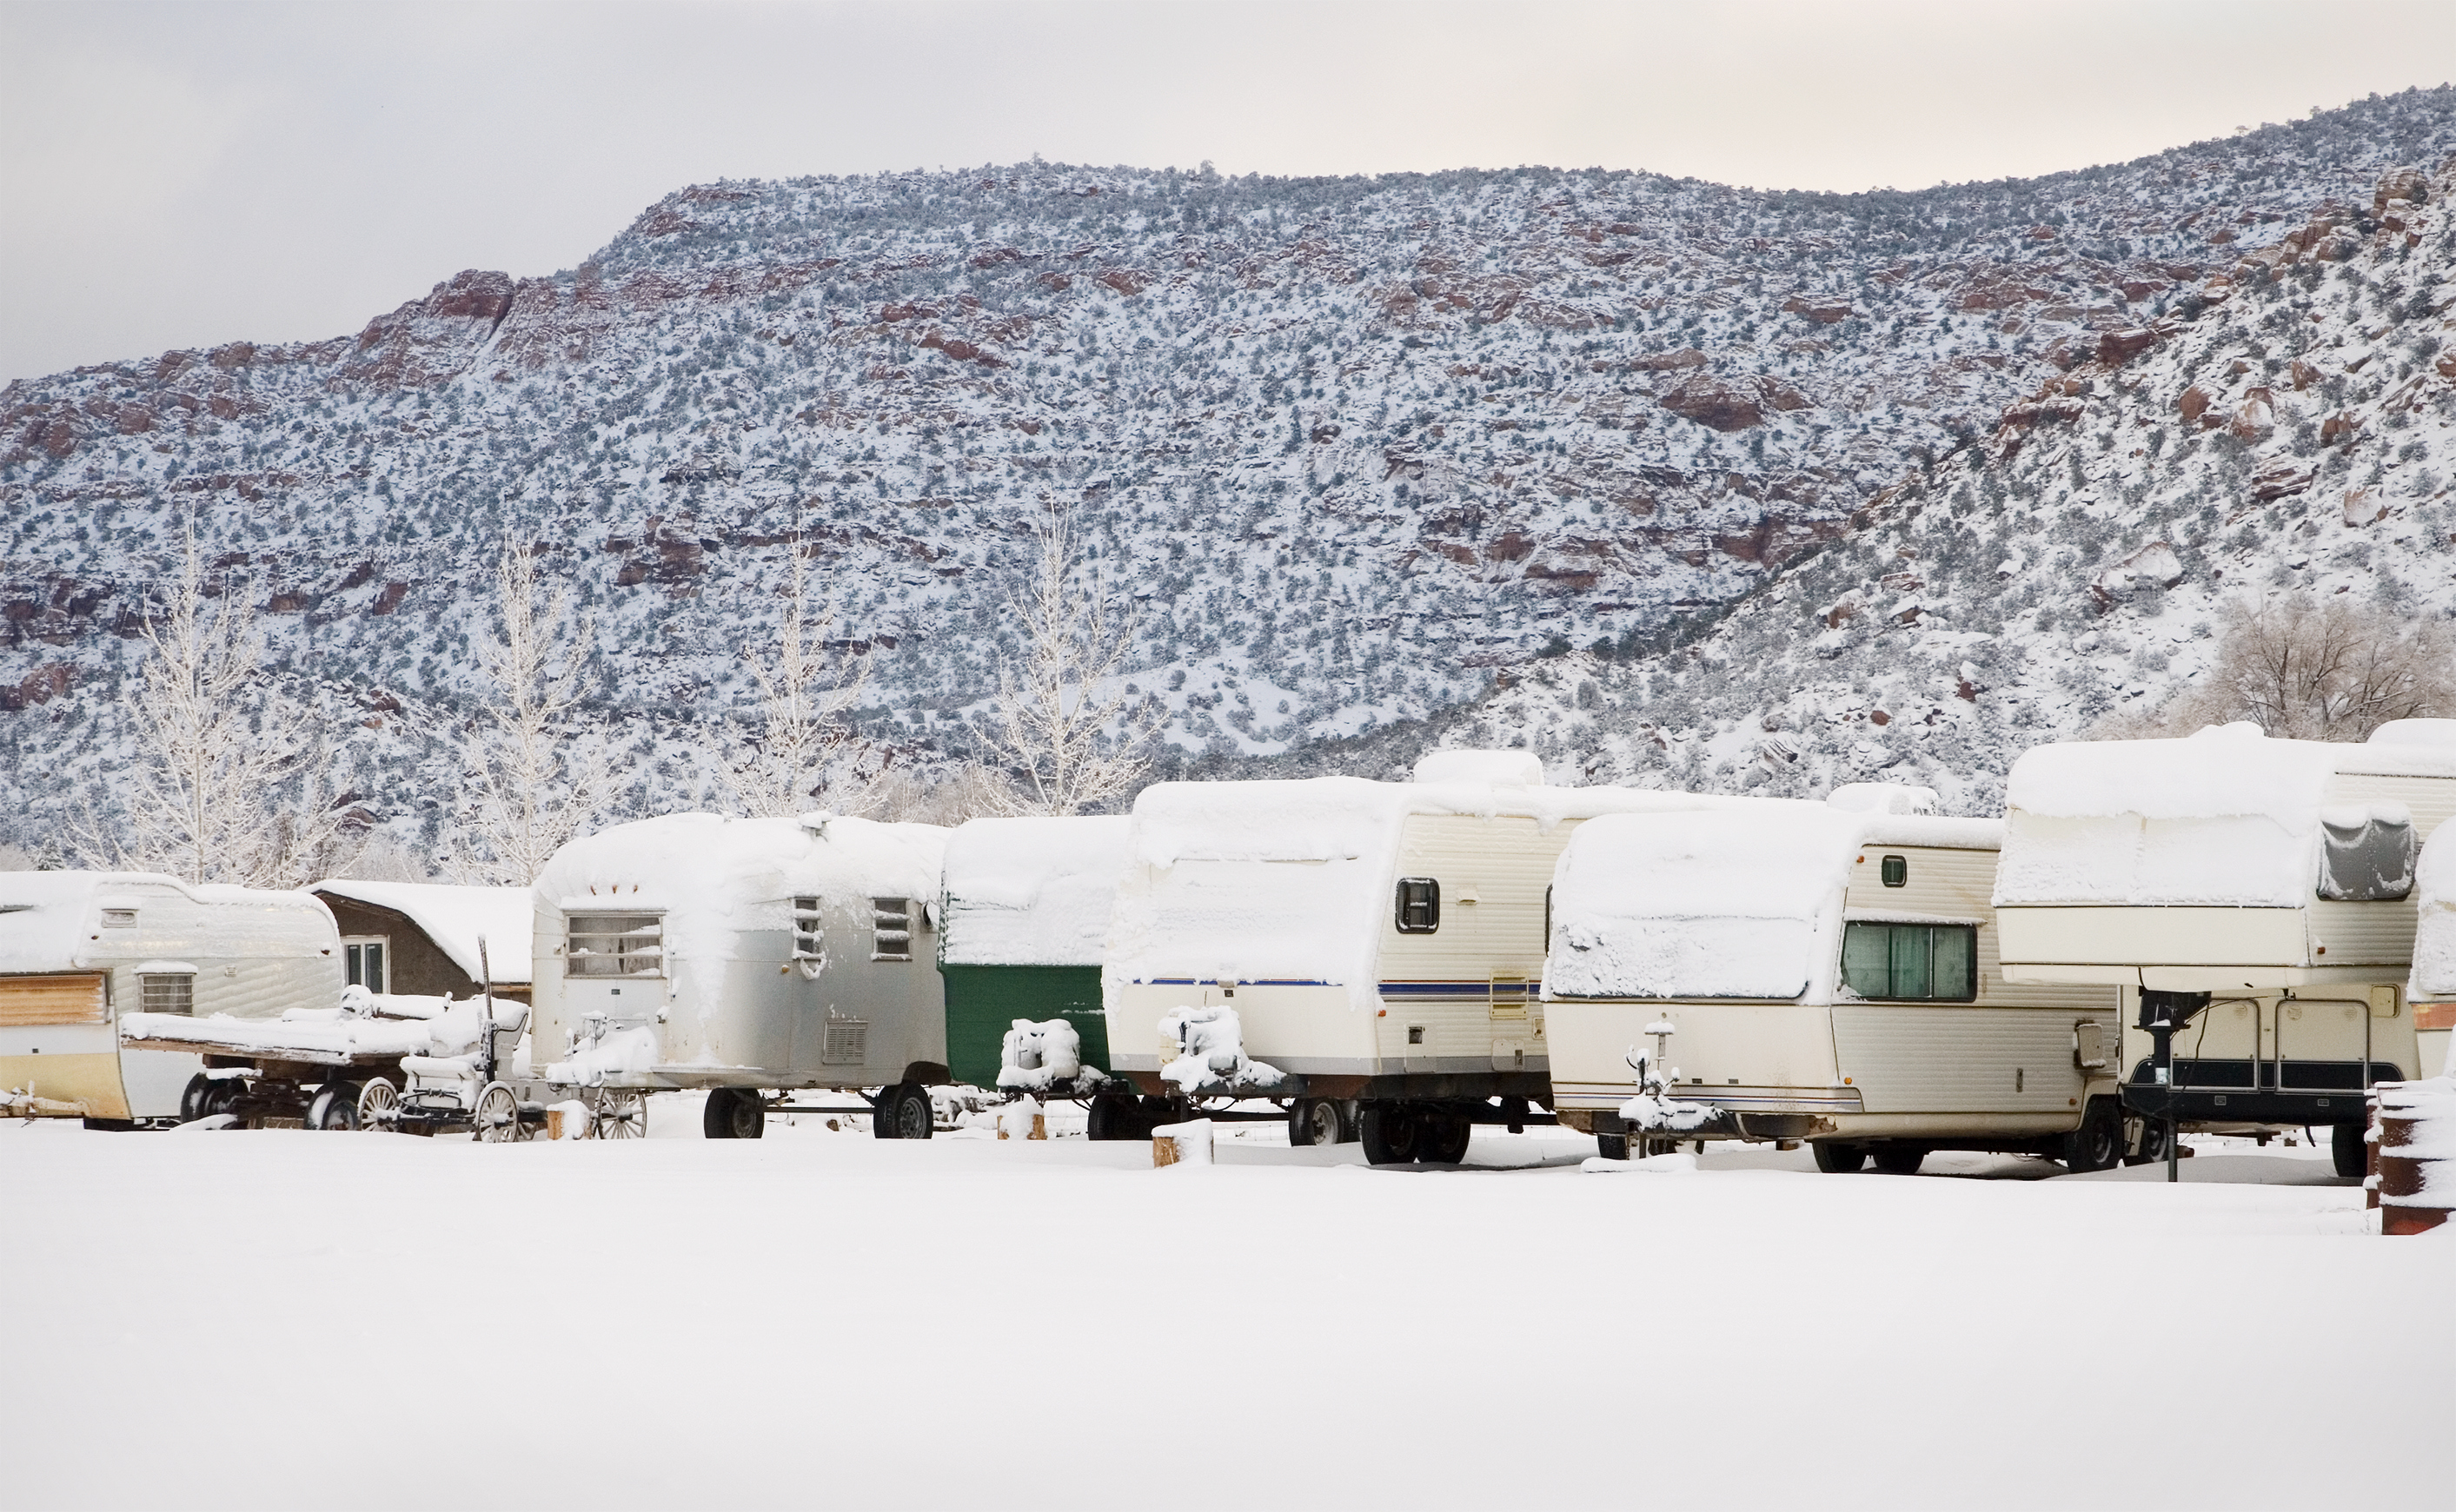 RVs Made for Winter: The Cold Is No Problem